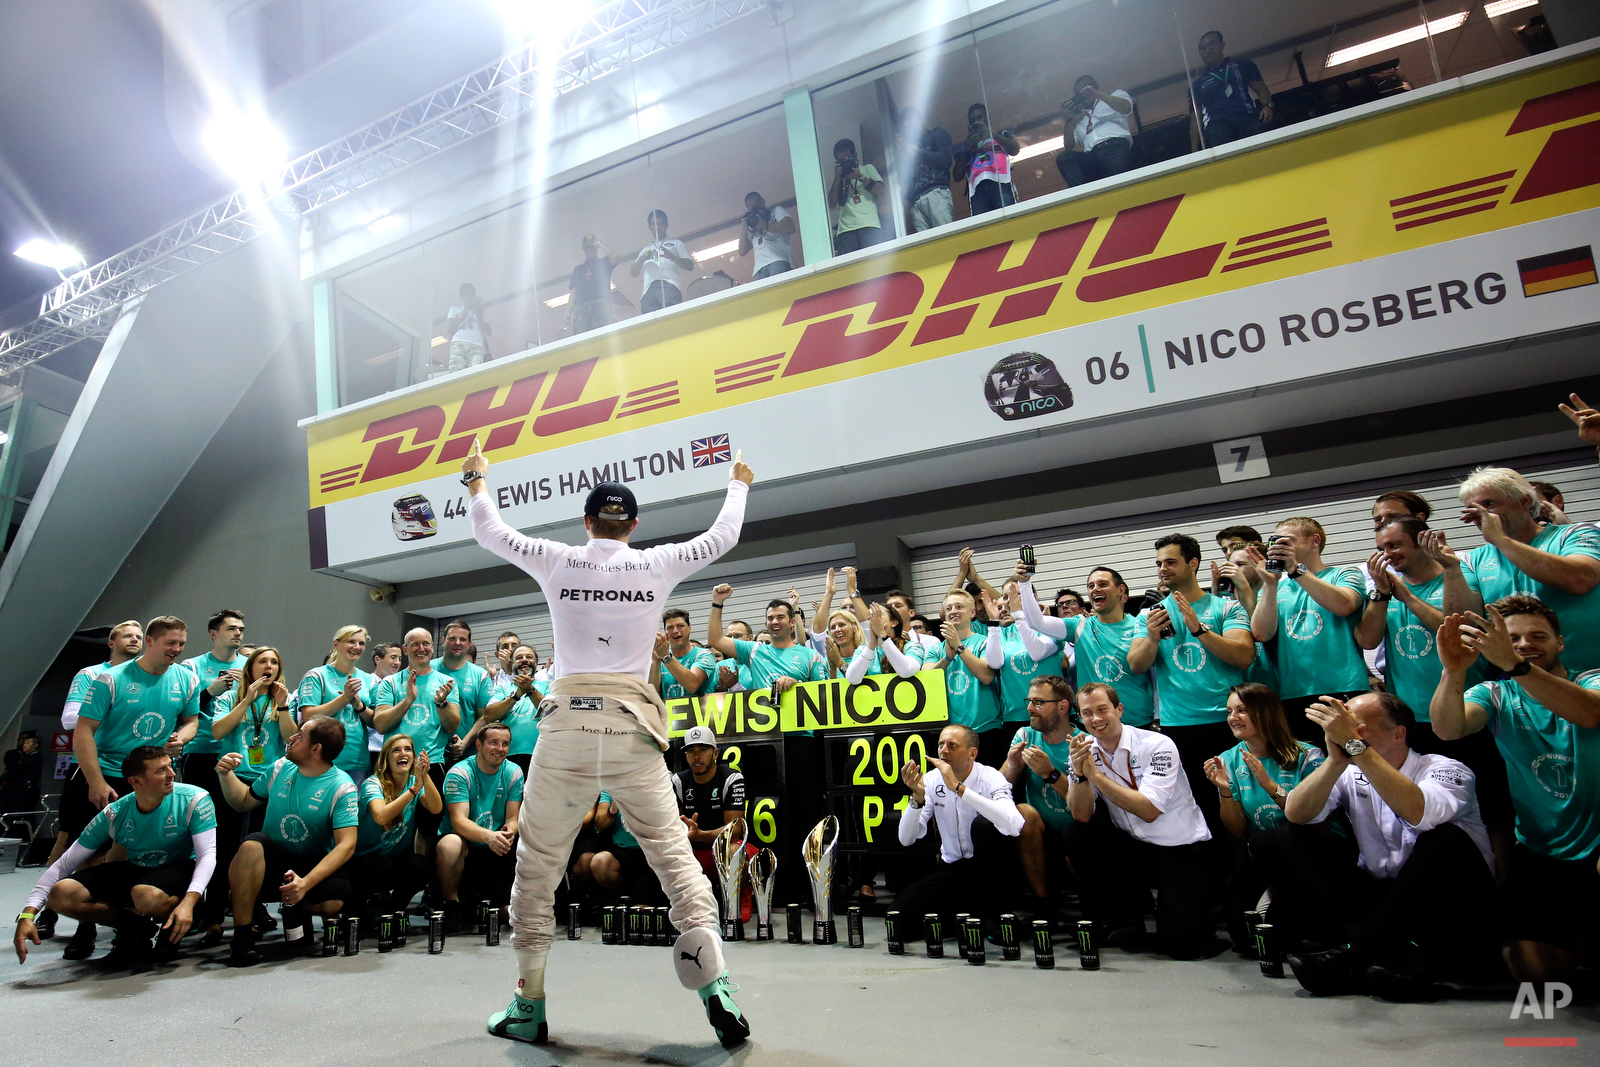 Mercedes driver Nico Rosberg of Germany celebrates with his team after winning the Singapore Formula One Grand Prix on the Marina Bay City Circuit Singapore, Sunday, Sept. 18, 2016. (AP Photo/Yong Teck Lim)